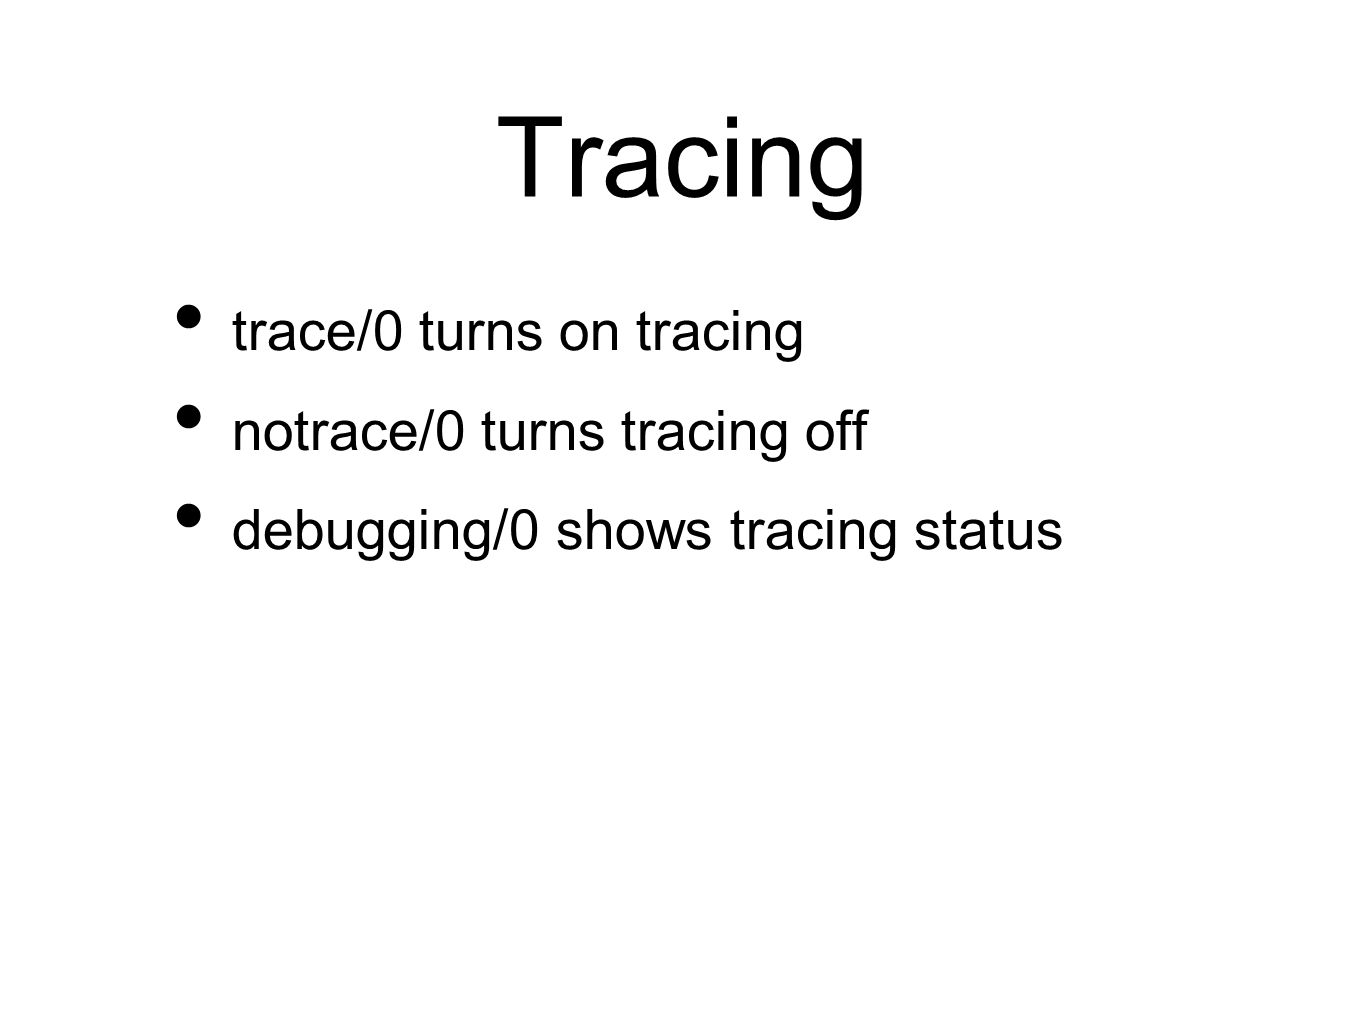 Tracing trace/0 turns on tracing notrace/0 turns tracing off